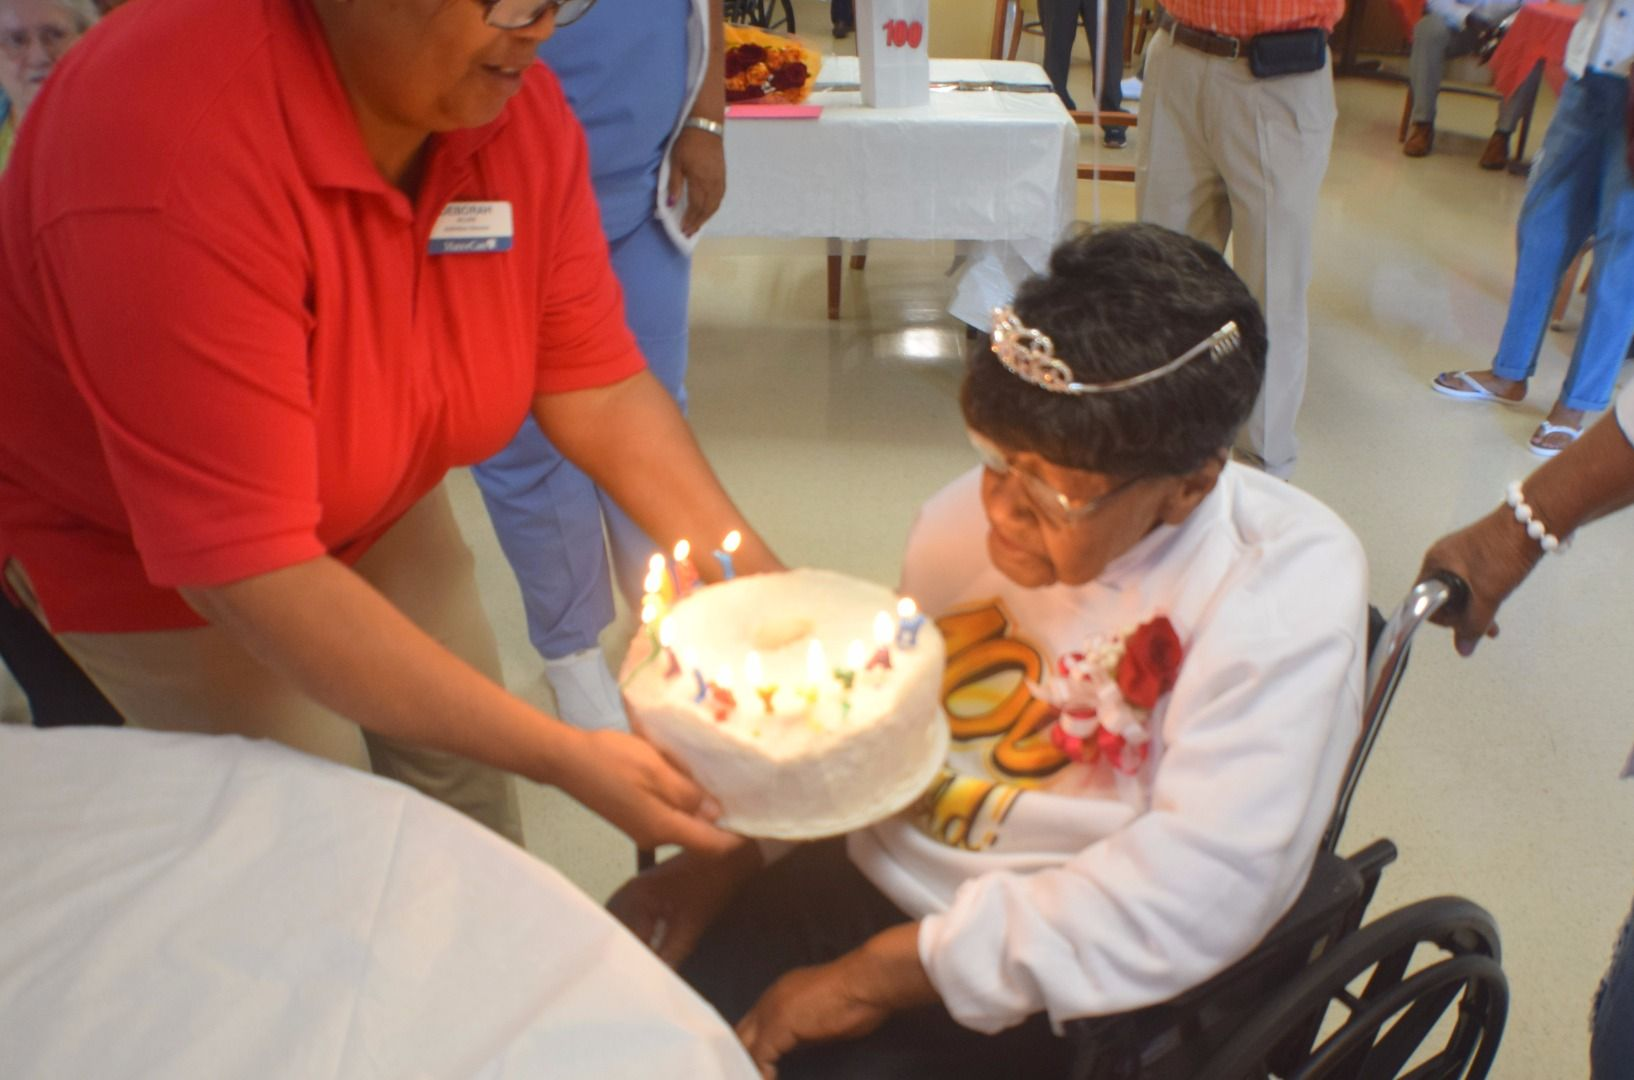 Pin on Home Health and Hospice Care